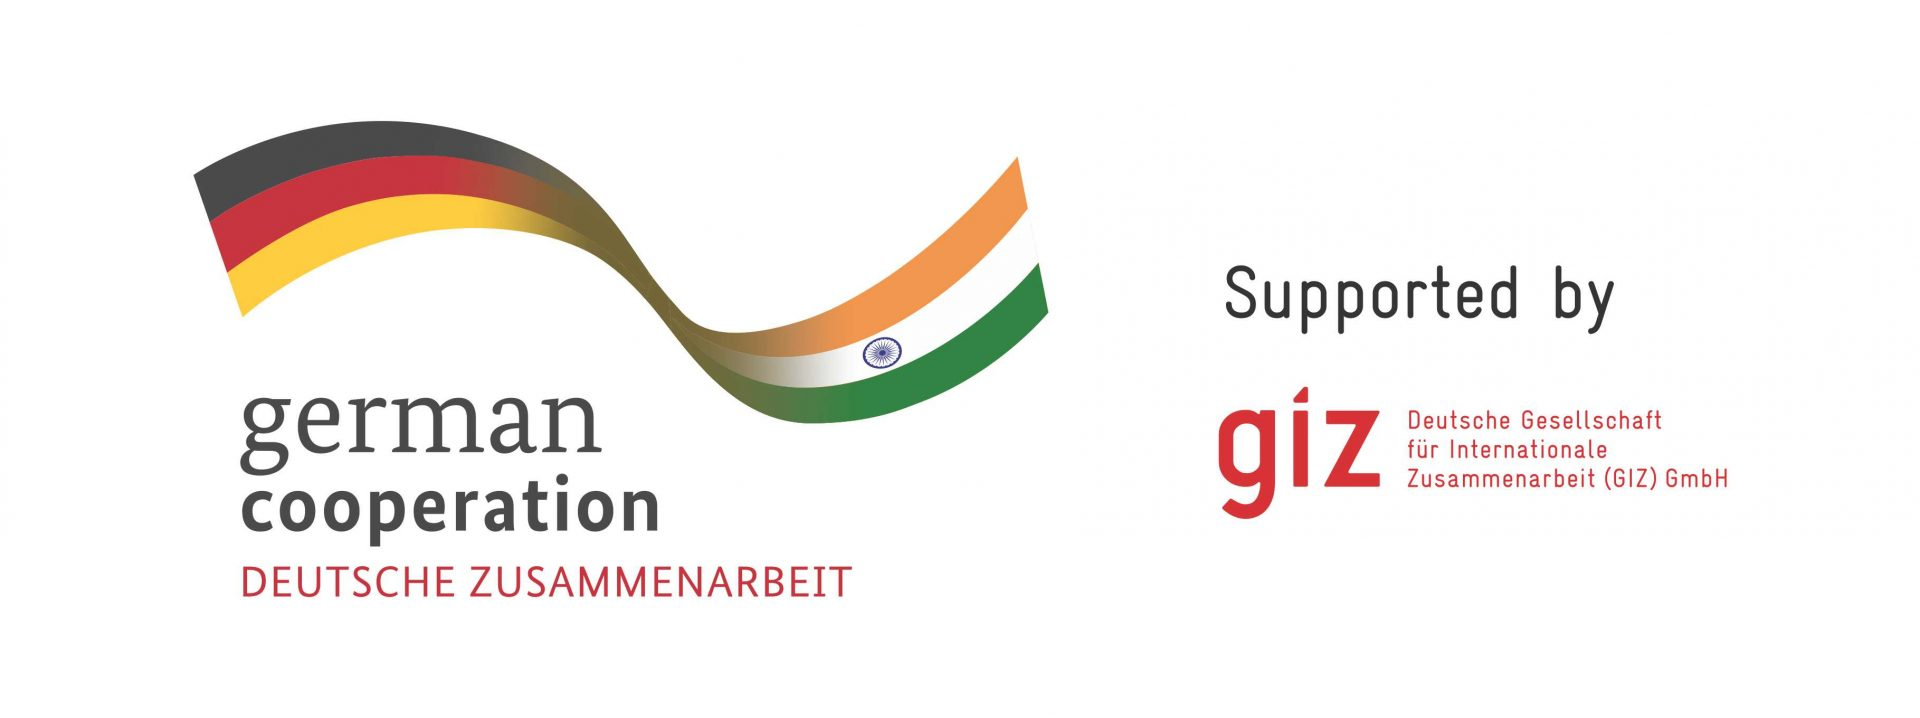 GIZ_India_Cooperation_Logo